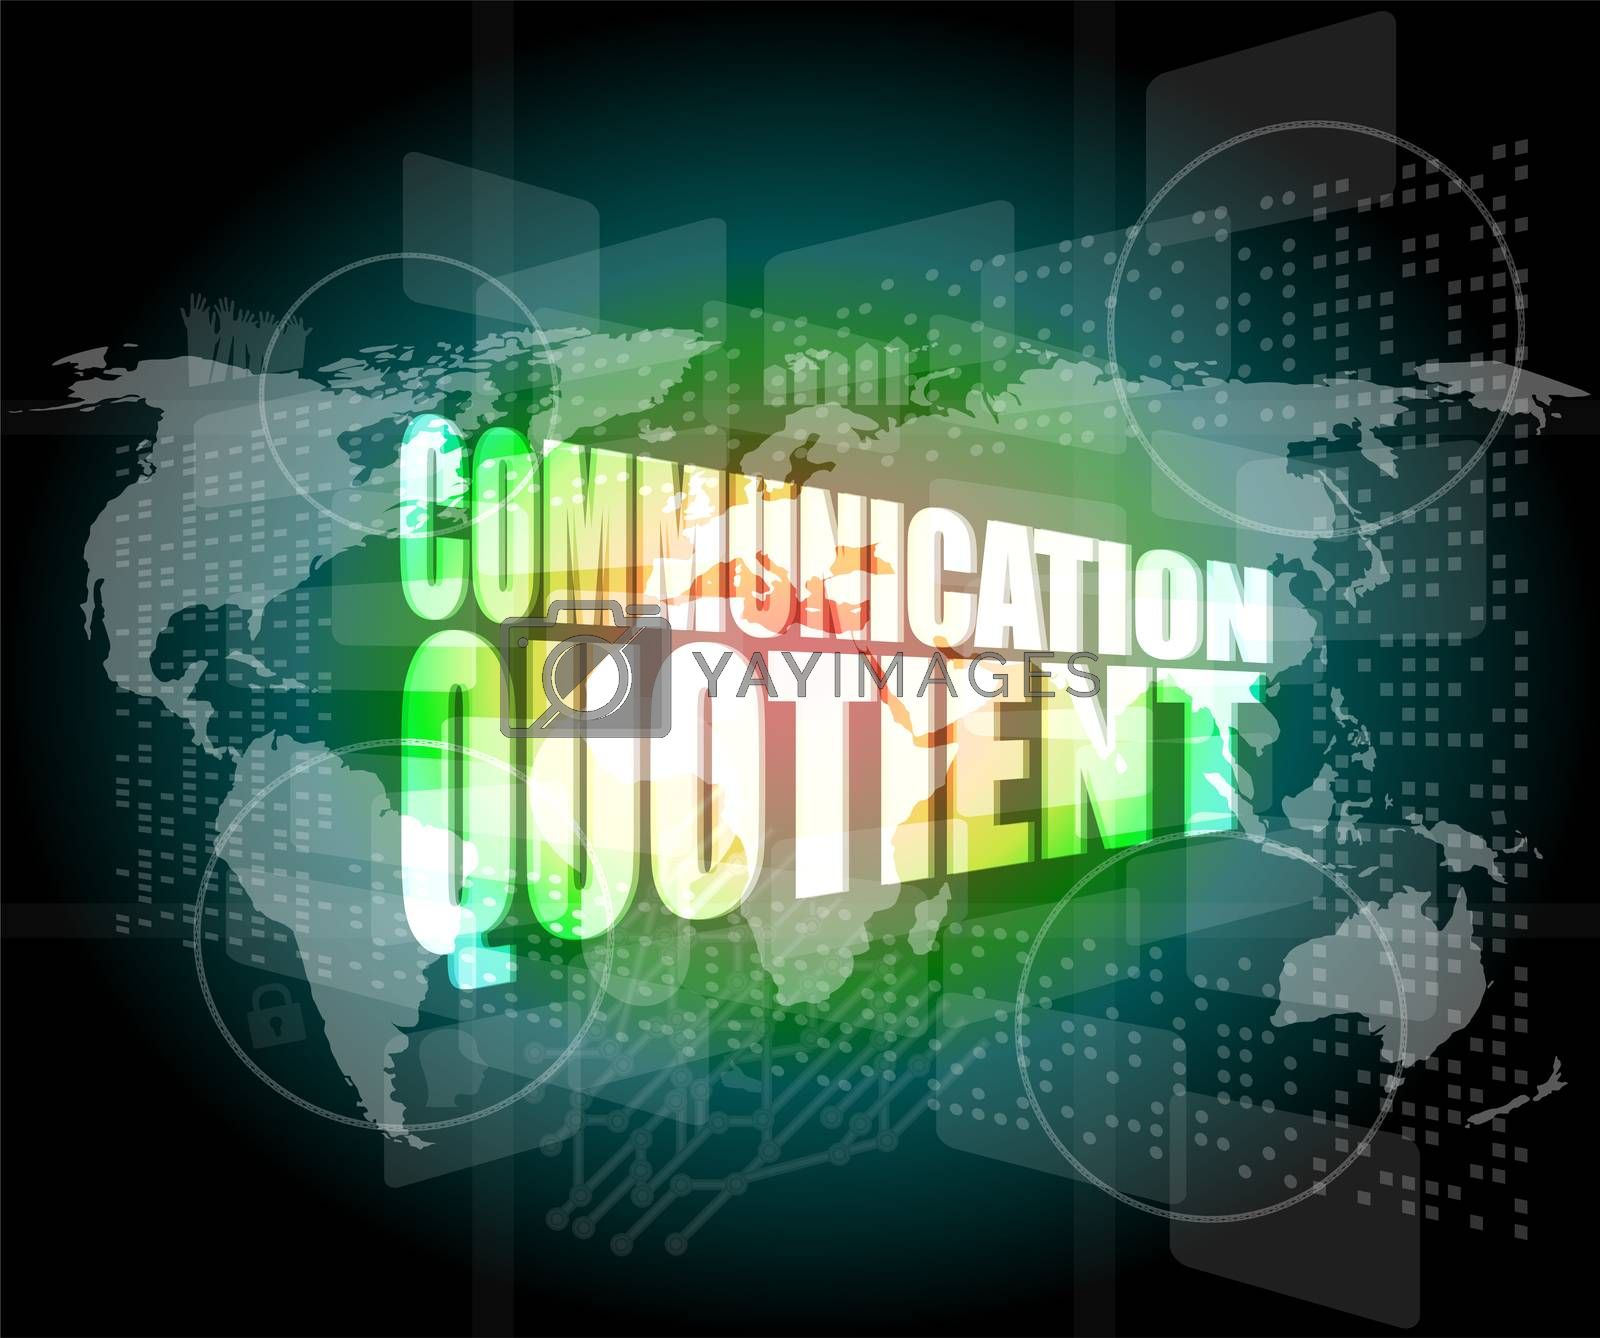 communication quotient word on business digital touch screen